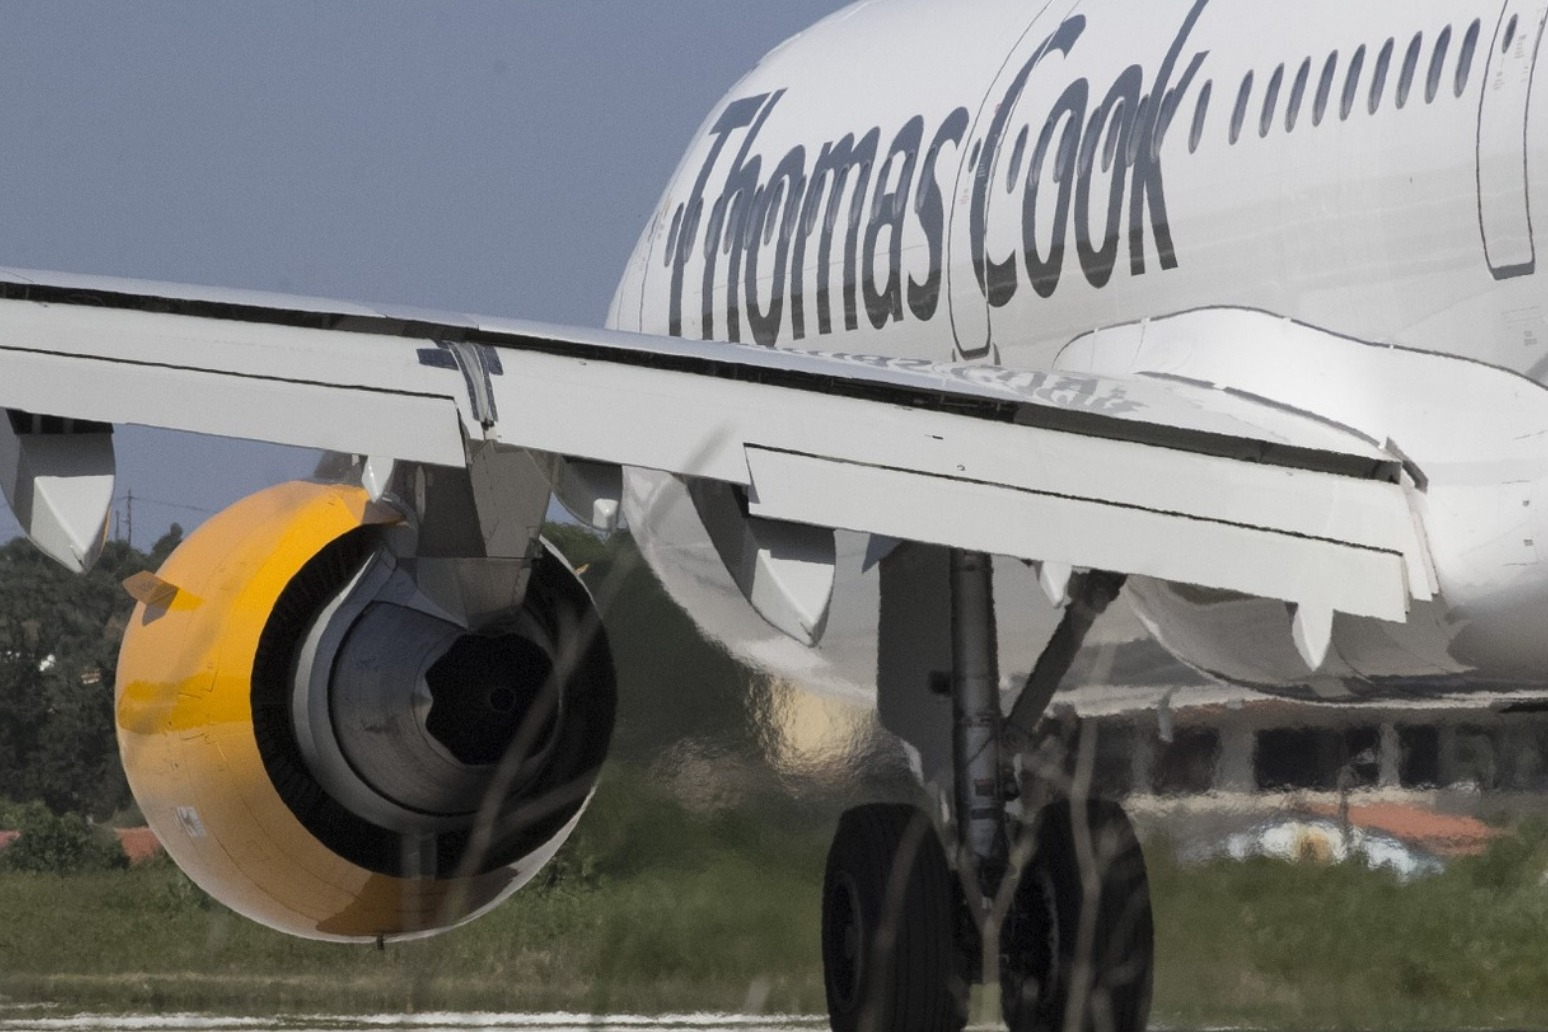 Thomas Cook resumes flights to Tunisia after three years